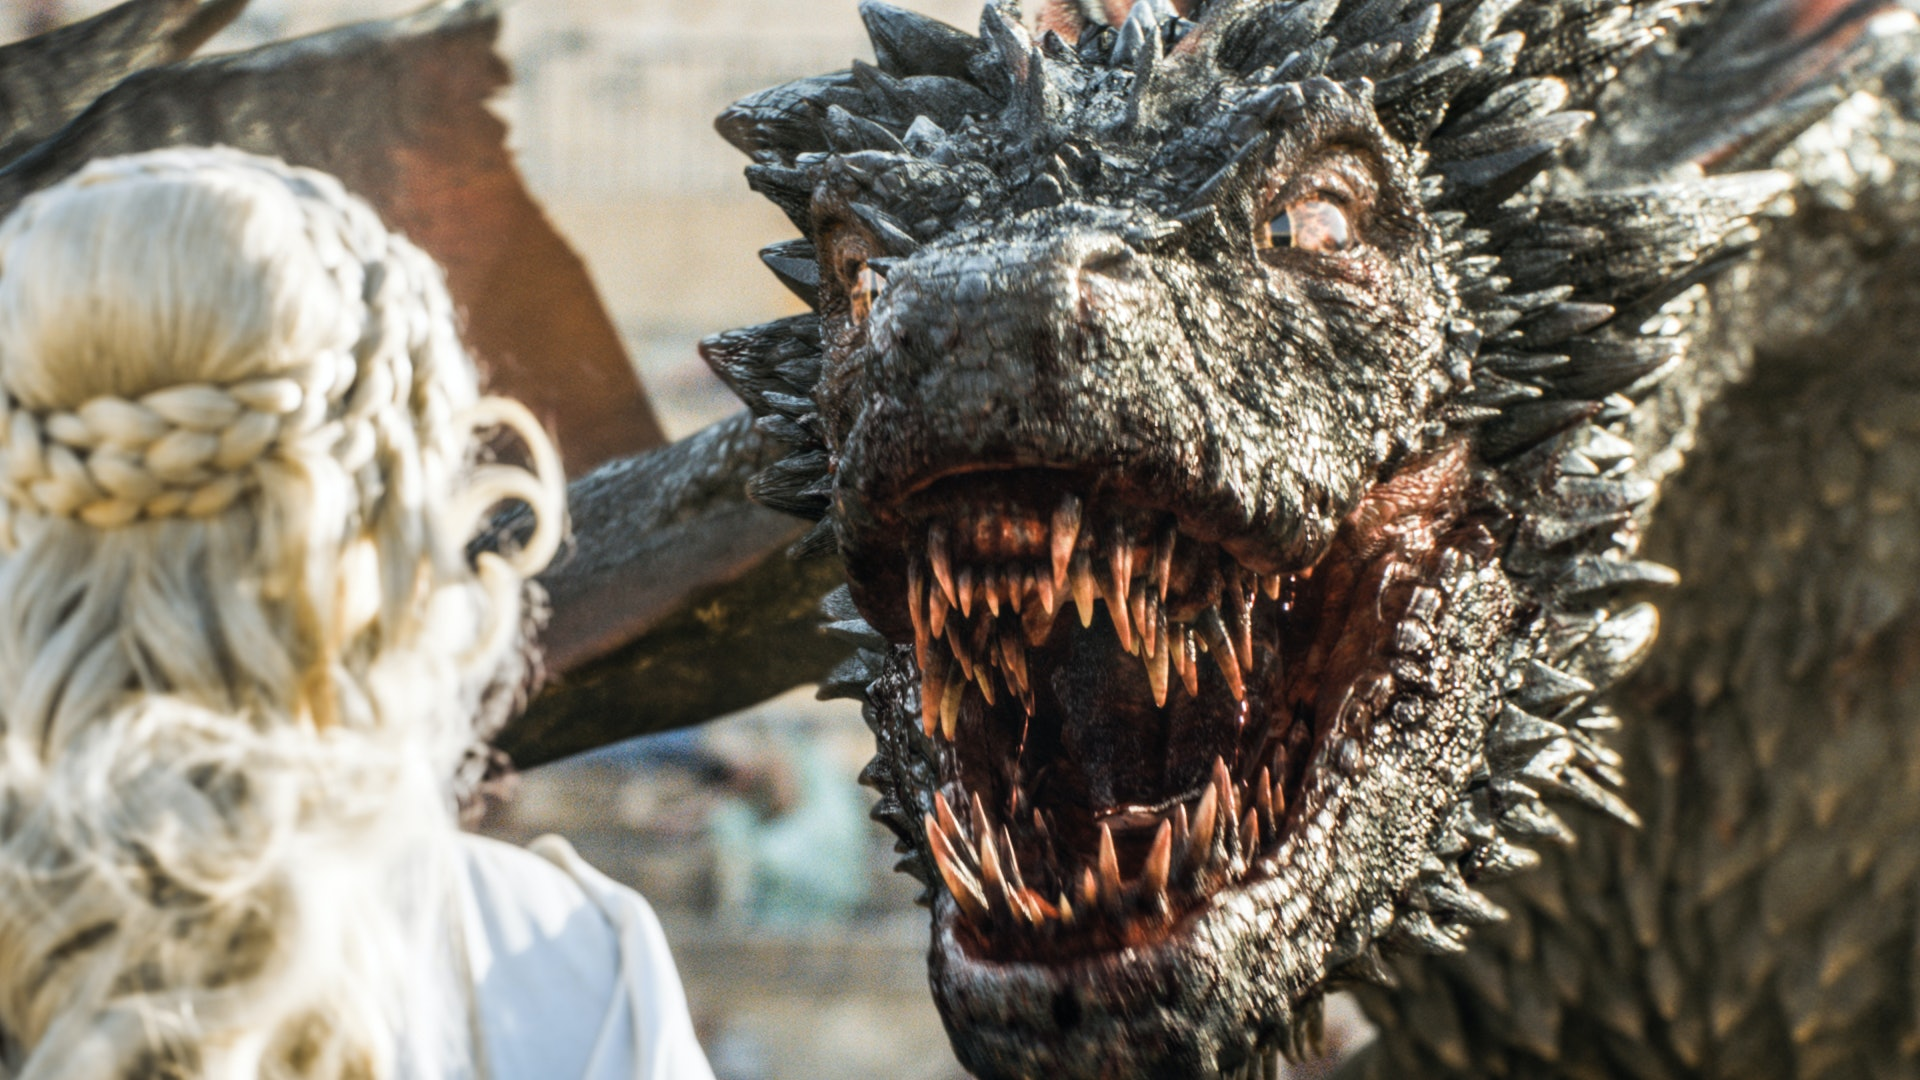 what happens to daenerys 2 other dragons on game of thrones she left their fate up the people meereen